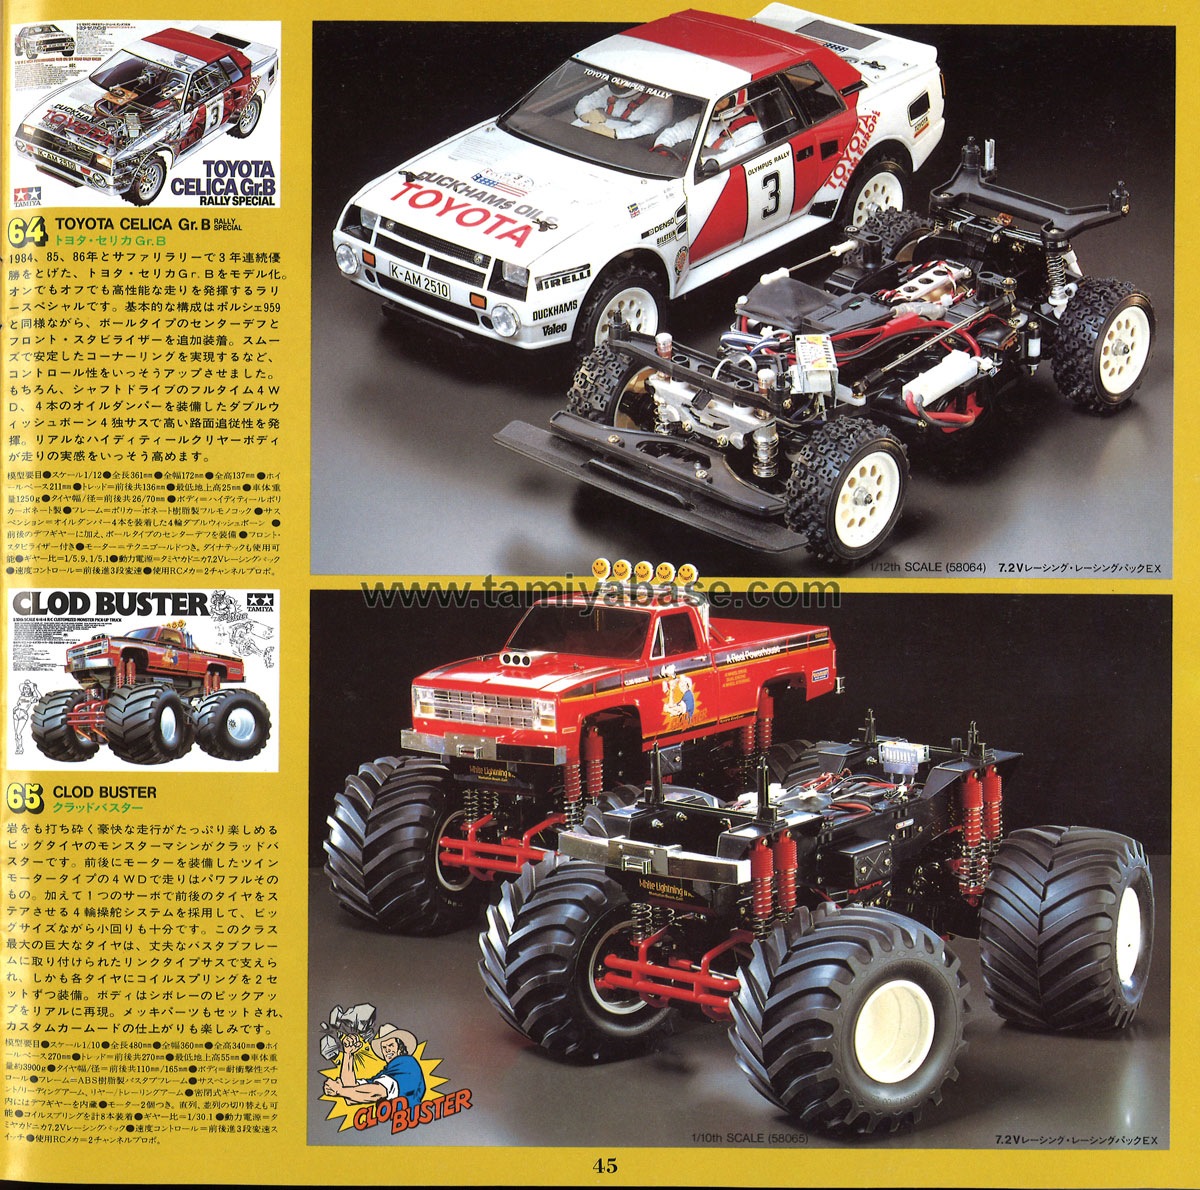 Y Reg Beetle For Sale 1989 - Tamiya Guide Bo...